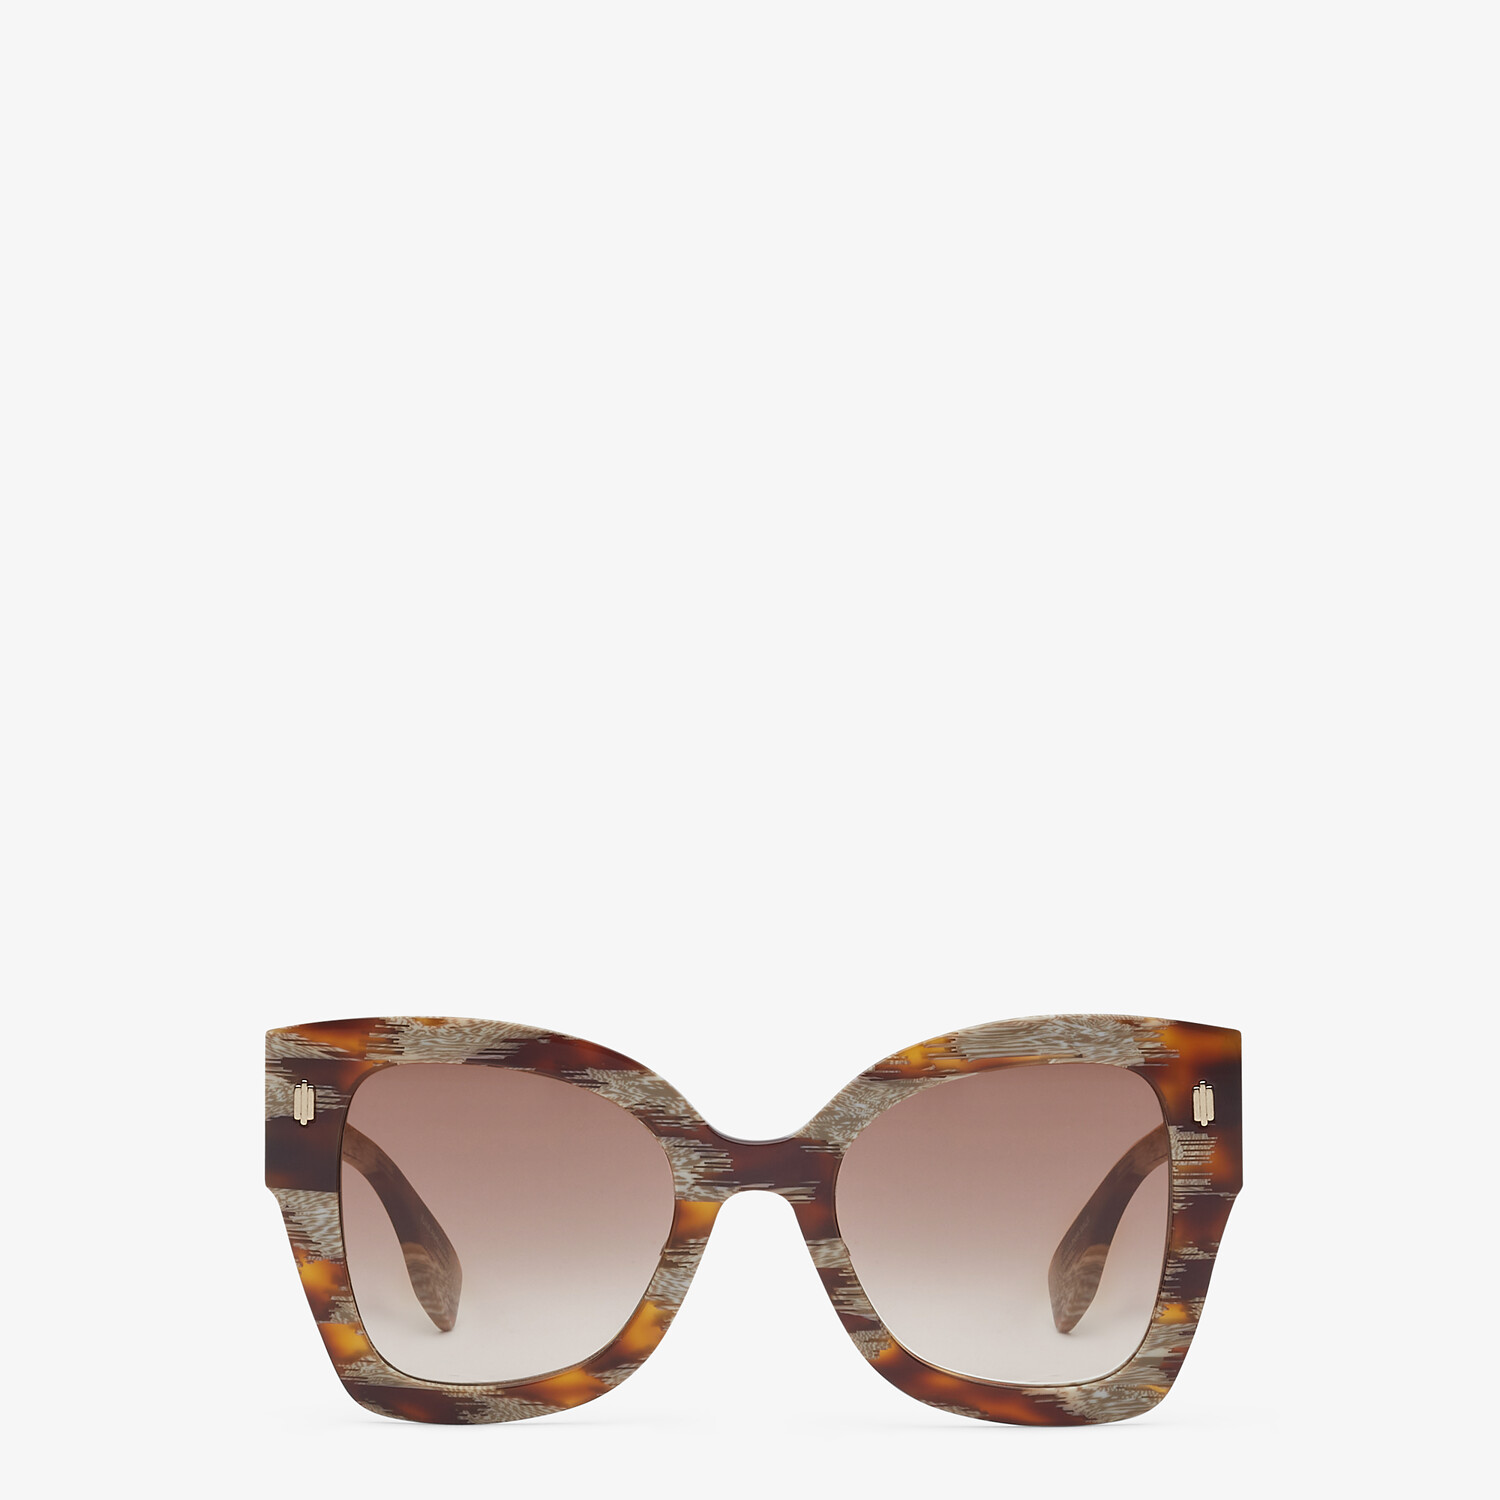 FENDI FENDI ROMA - Sunglasses in Havana-color animalier acetate - view 1 detail